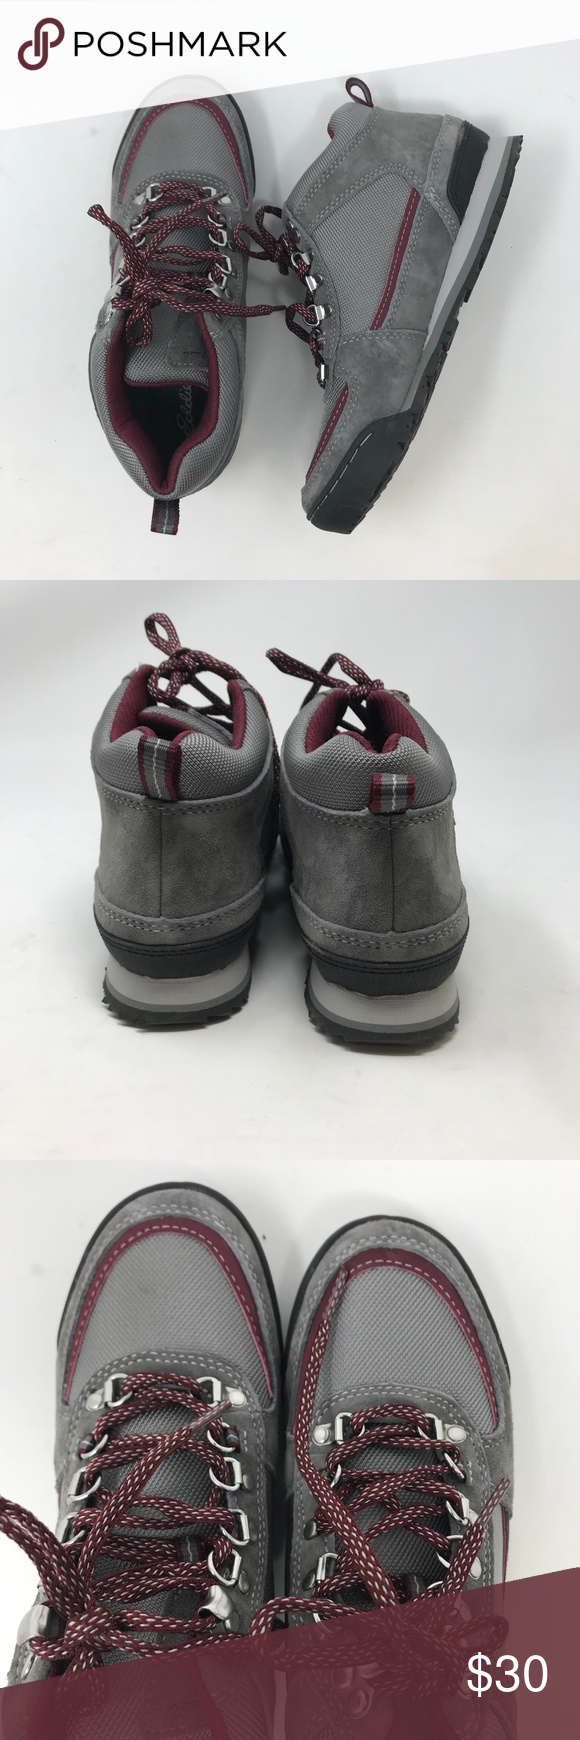 4c6521ac981 Eddie Bauer Grey Women's Hiking Boots Shoes 6.5 Pre-worn in great ...